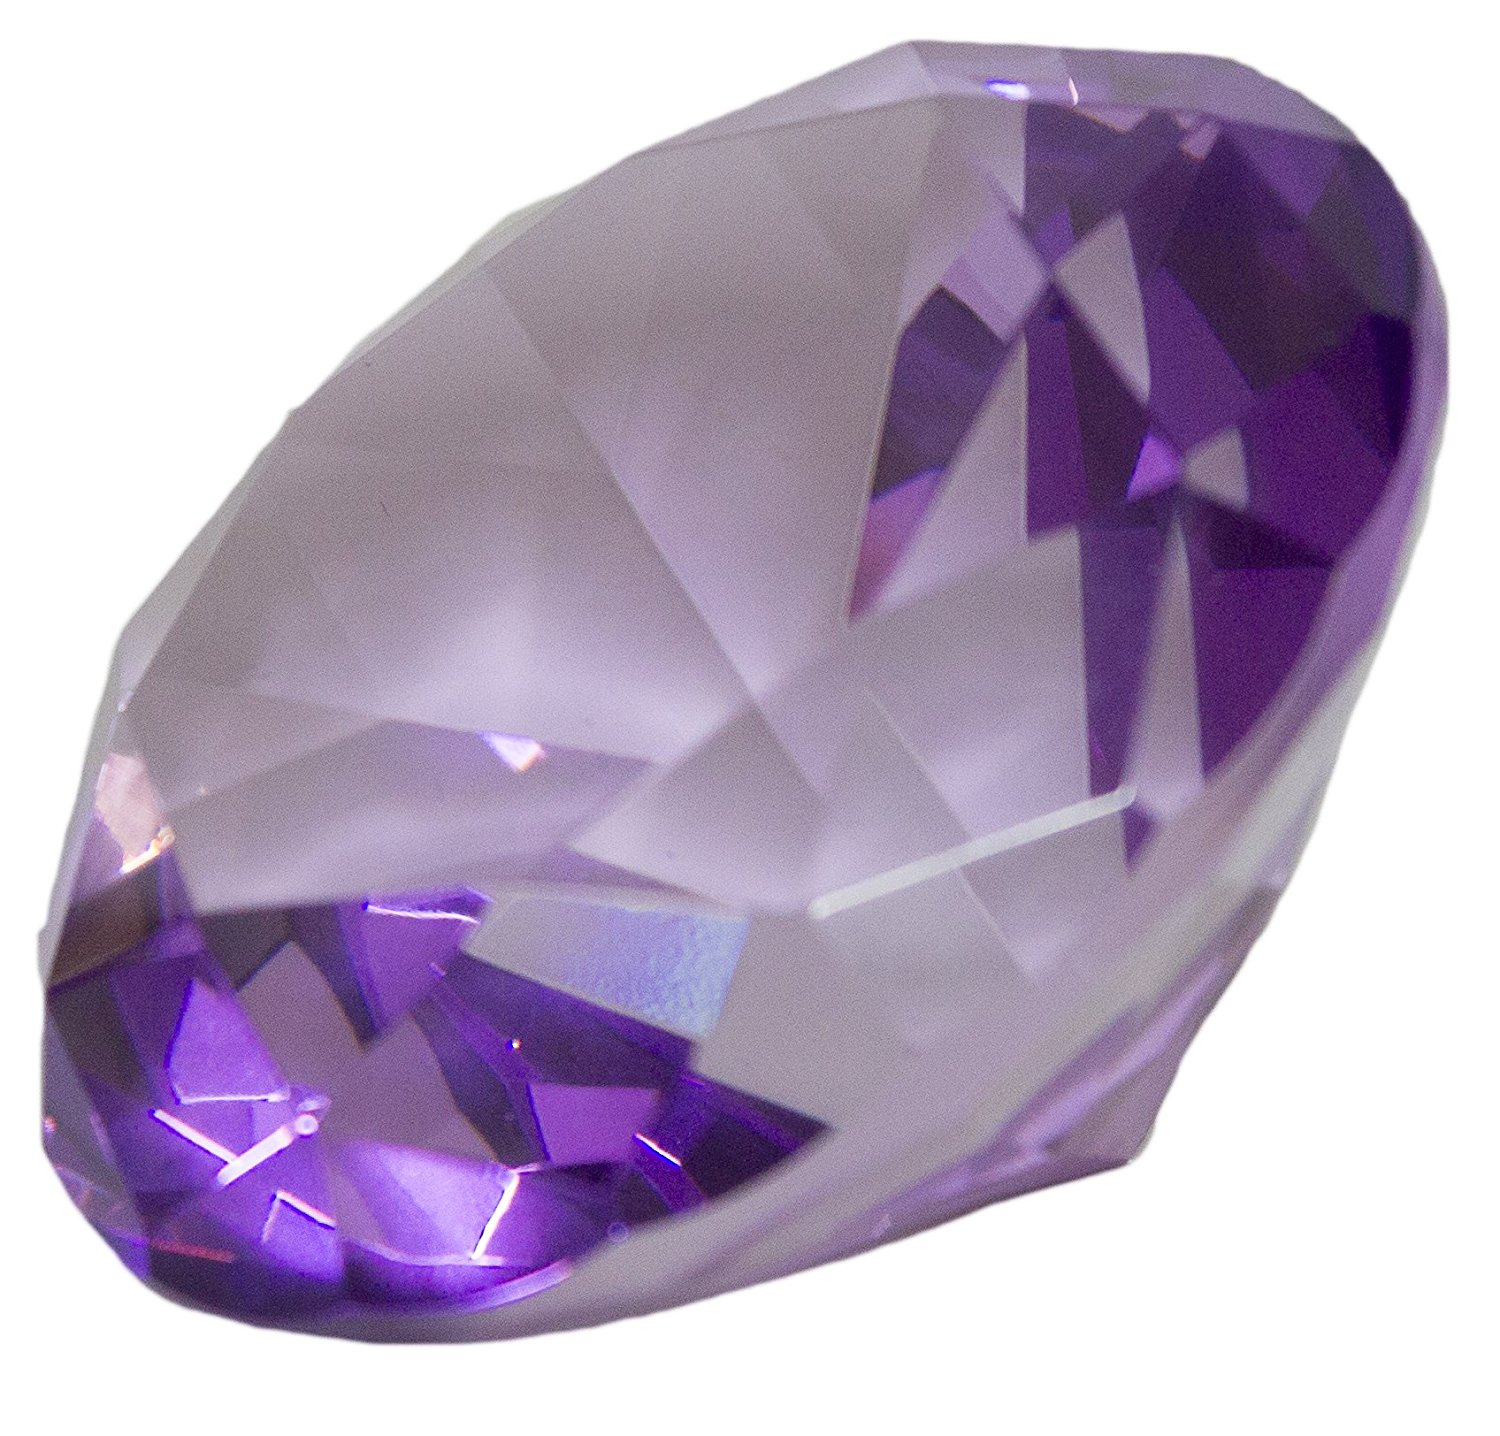 3.25 Inch Large Multifaceted Solitare Cut Jewel Paperweight (Purple), 3.25 x 2.25 inches By Barry Owen Co